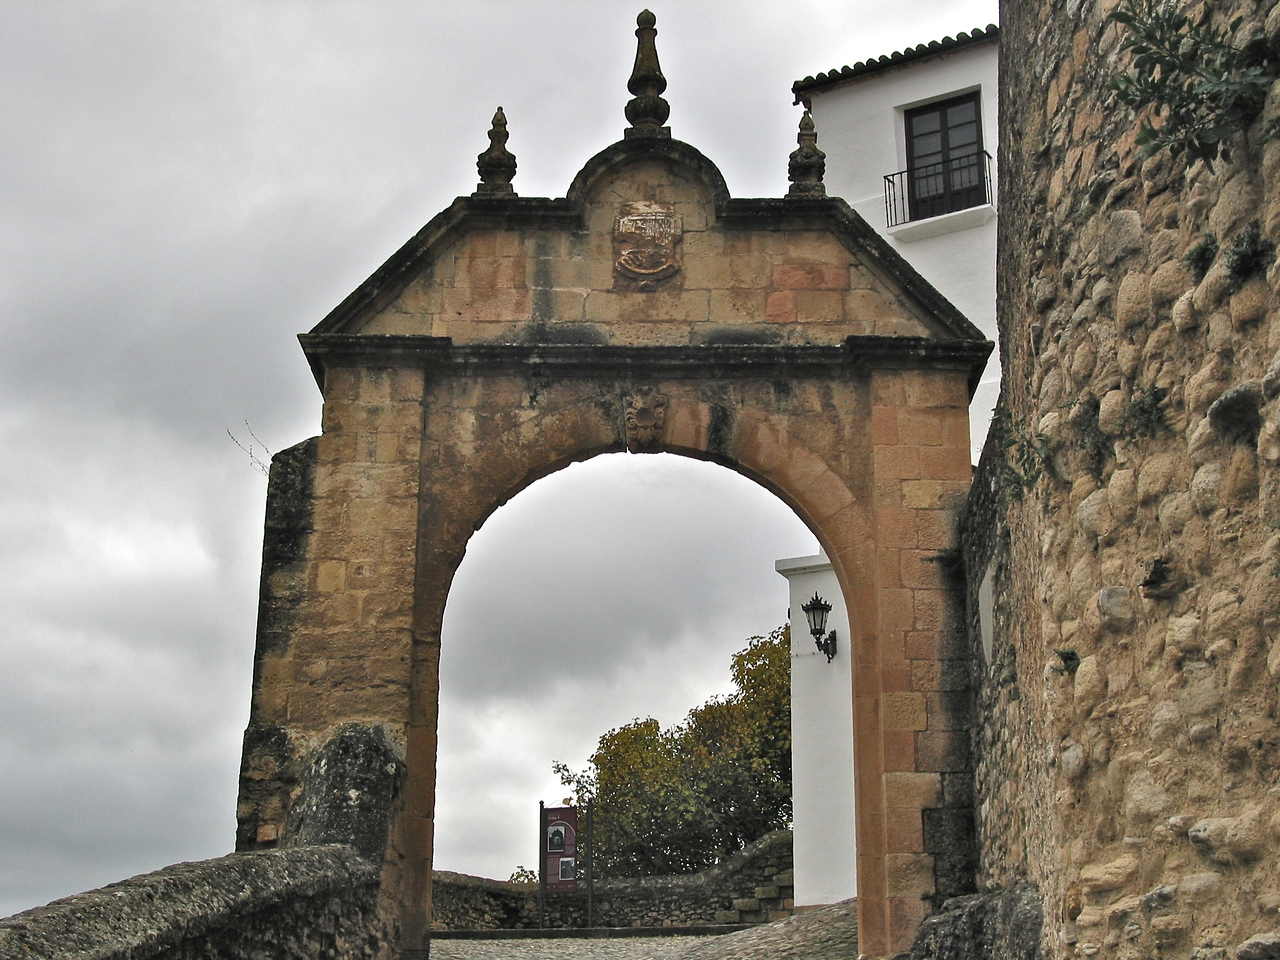 This is one of the old city gates into Ronda, surrounded by an old city wall.